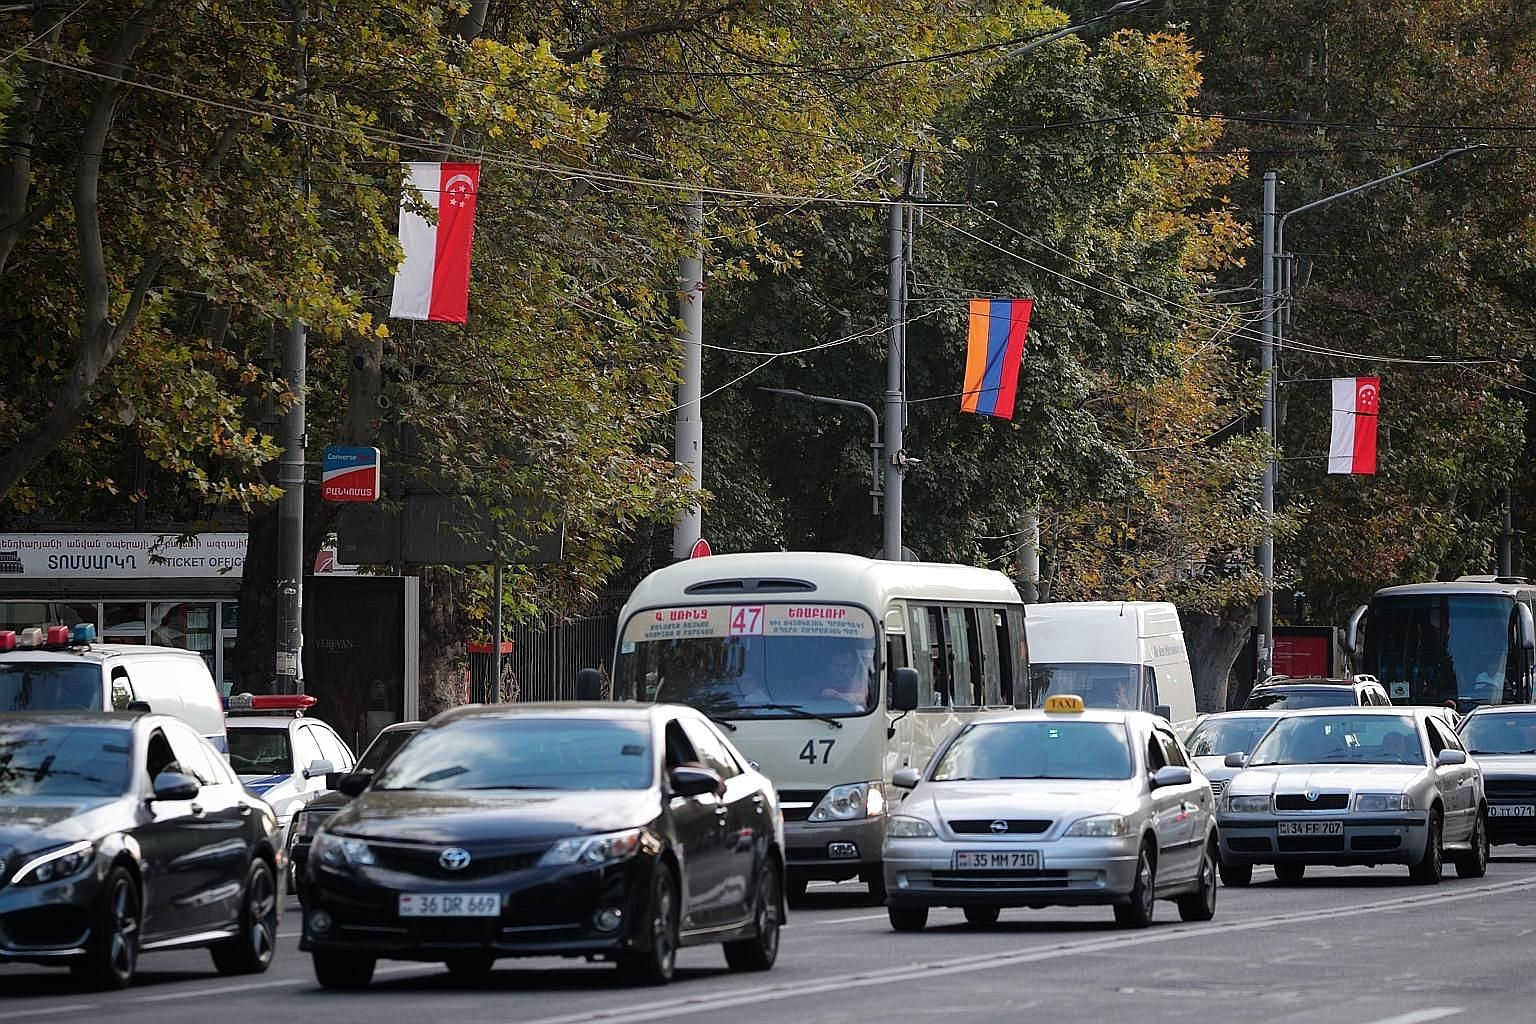 Singapore and Armenia flags lining the streets of Yerevan on Friday, ahead of Prime Minister Lee Hsien Loong's visit to the Armenian capital. The visit is the first by a Singapore prime minister to Armenia.